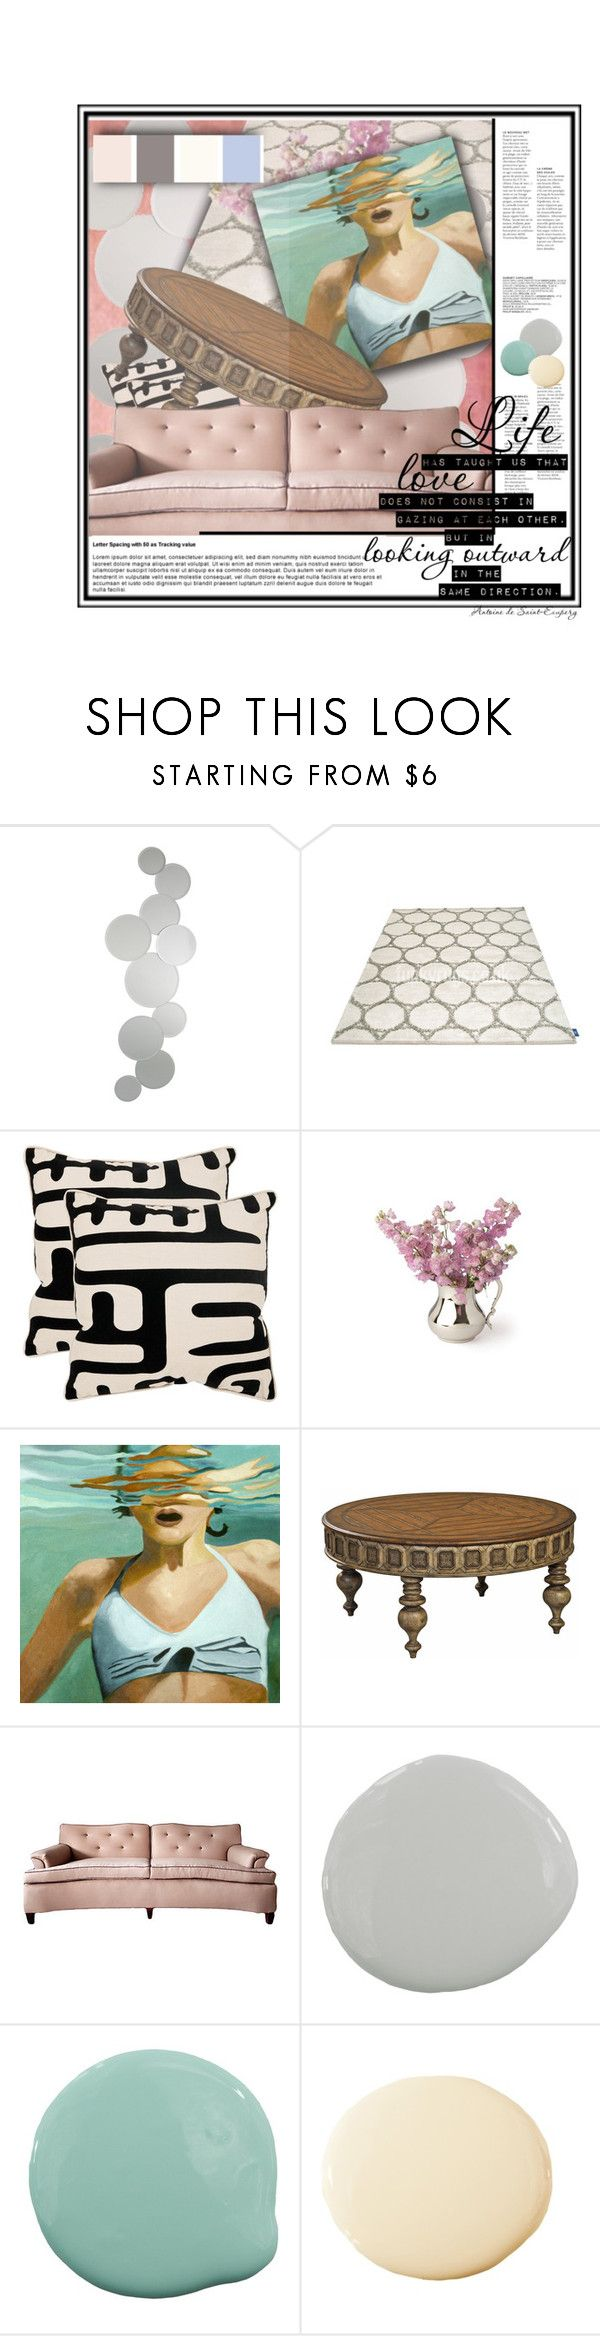 """looking outward."" by mercimasada ❤ liked on Polyvore featuring interior, interiors, interior design, home, home decor, interior decorating, John Lewis, Joseph Abboud, Safavieh and Ambella"